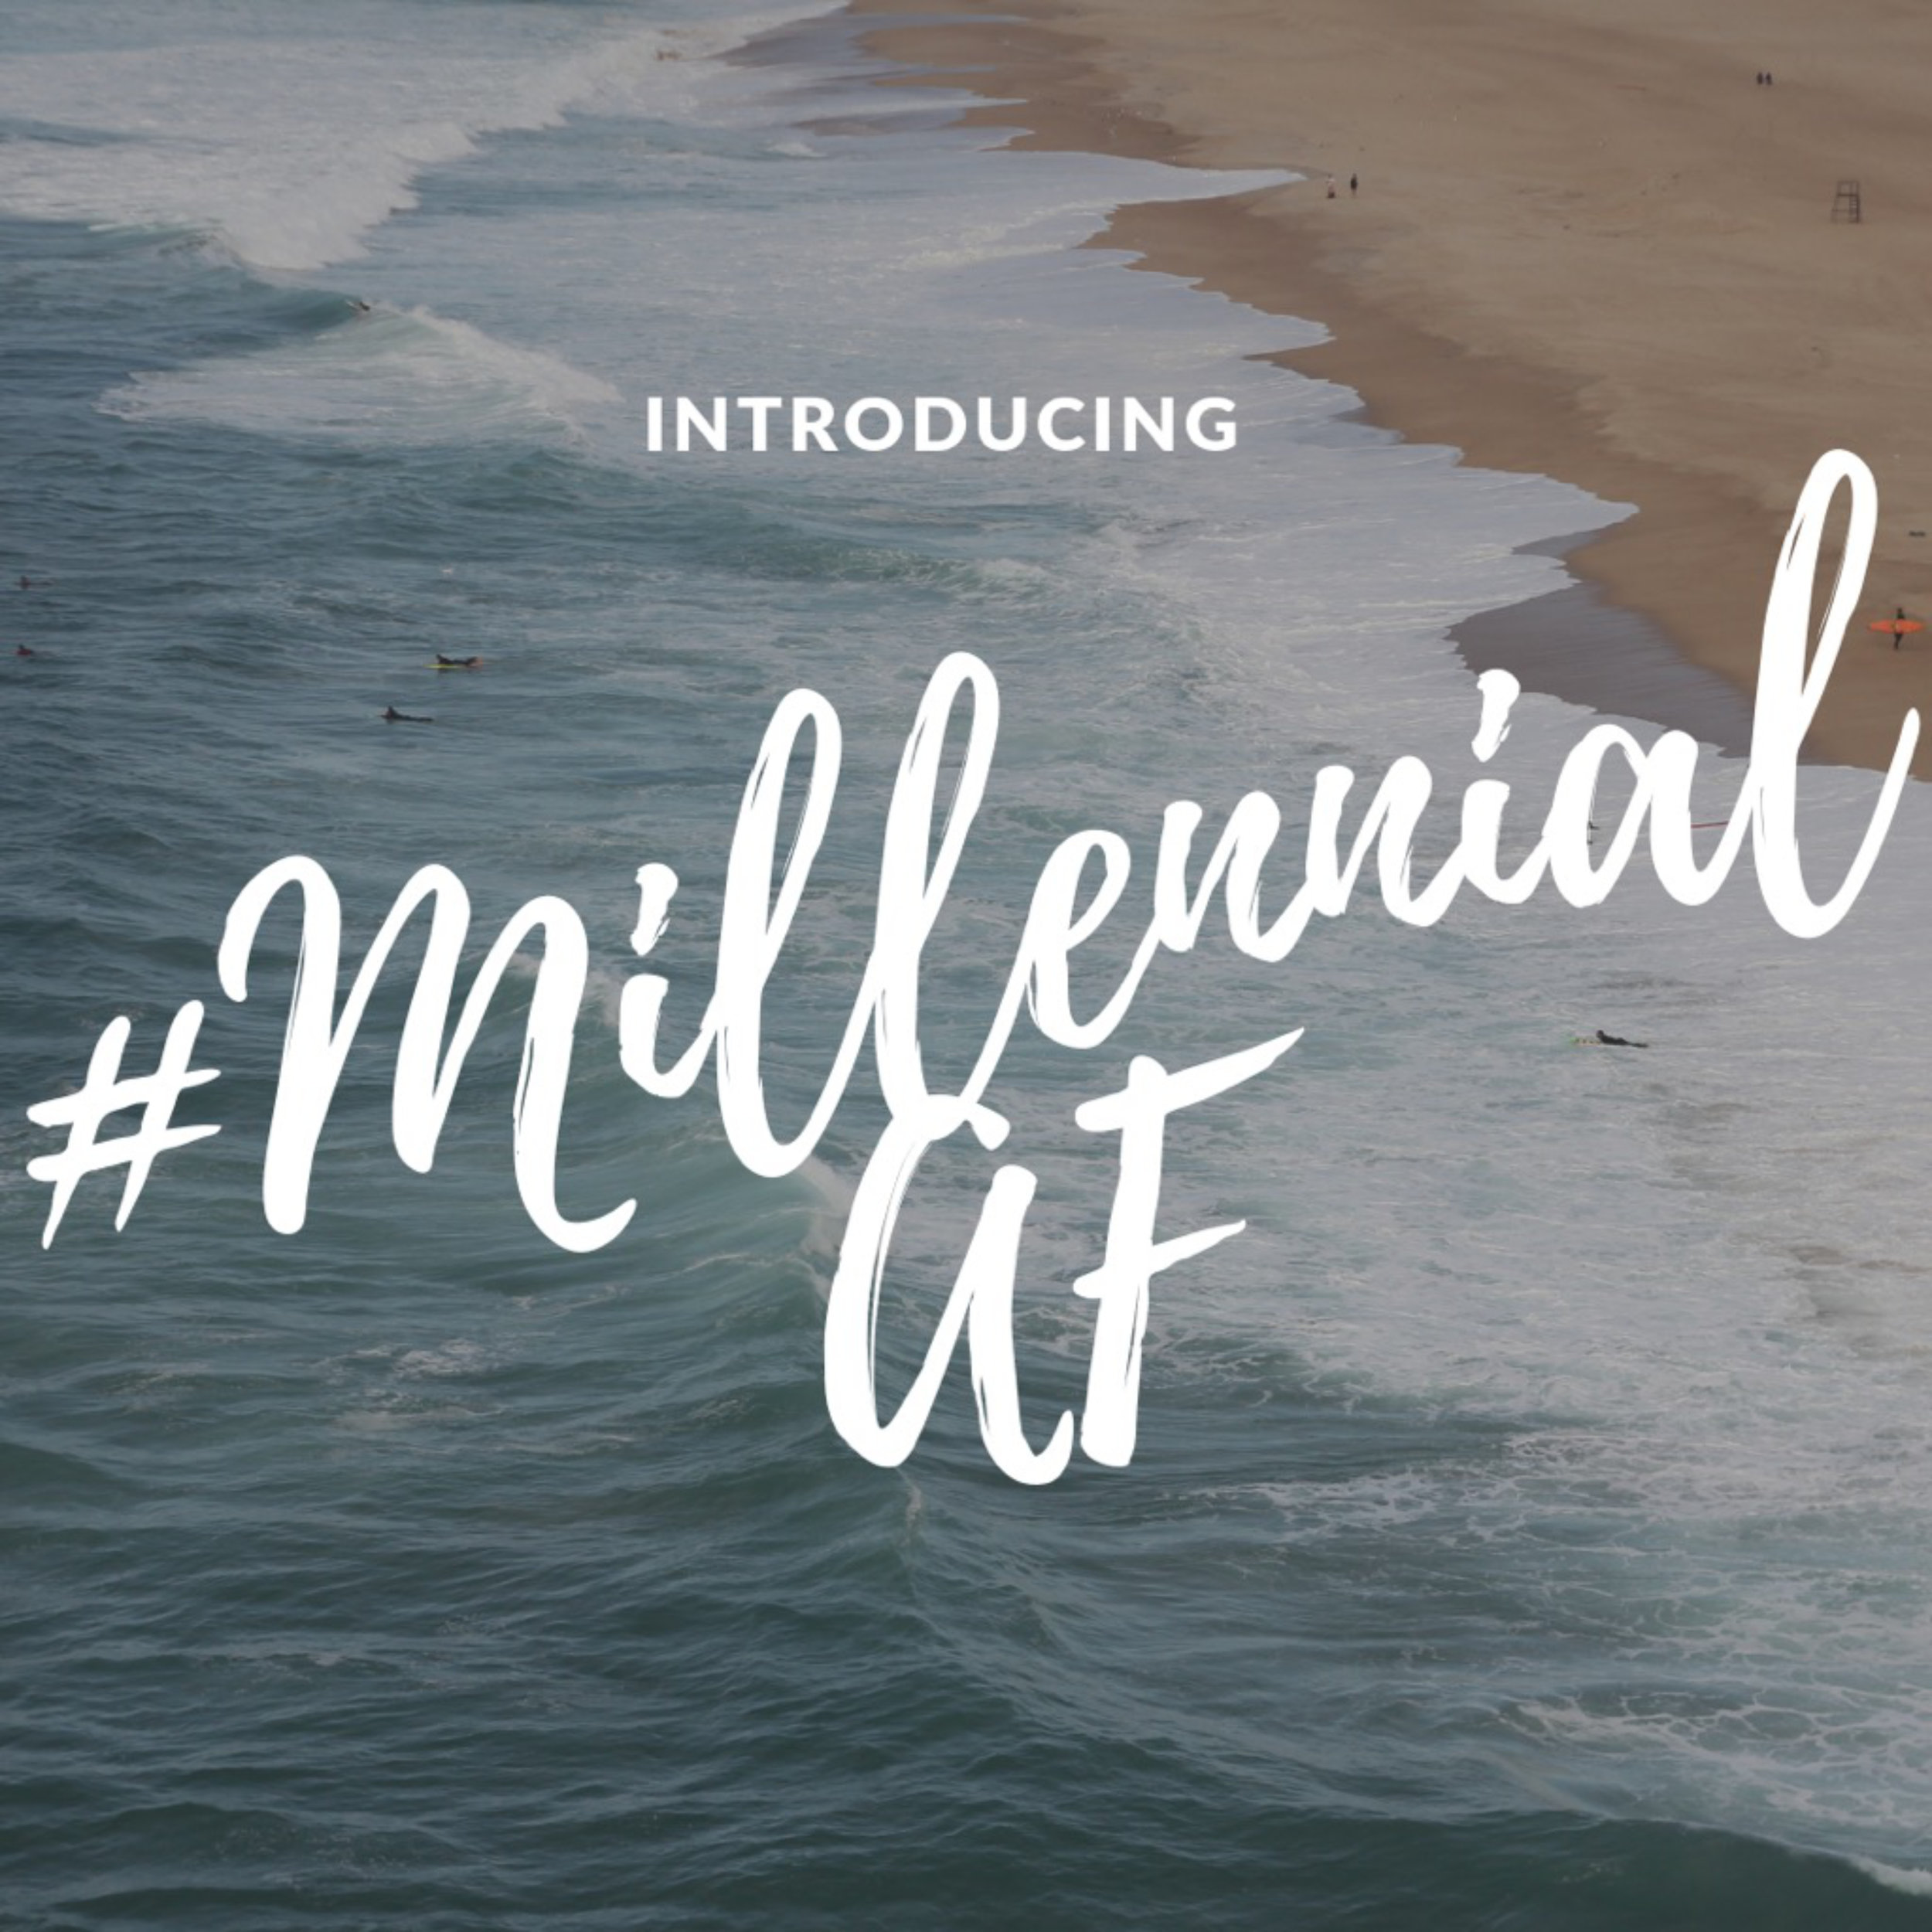 #MILLENNIALAF - An educational yet entertaining podcast discussing all things #MillennialAF!